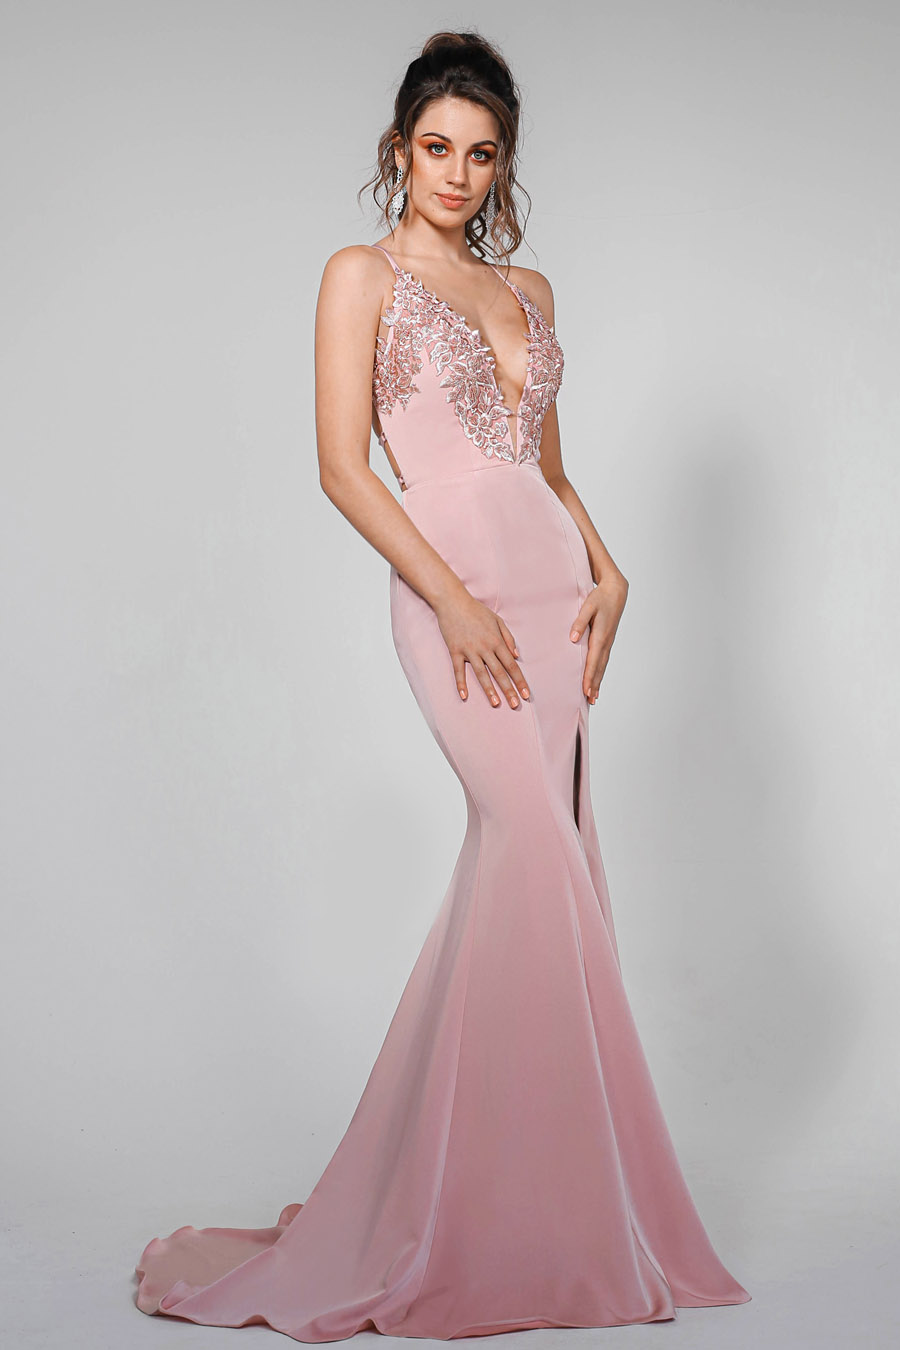 Bridesmaid's Dress Pink